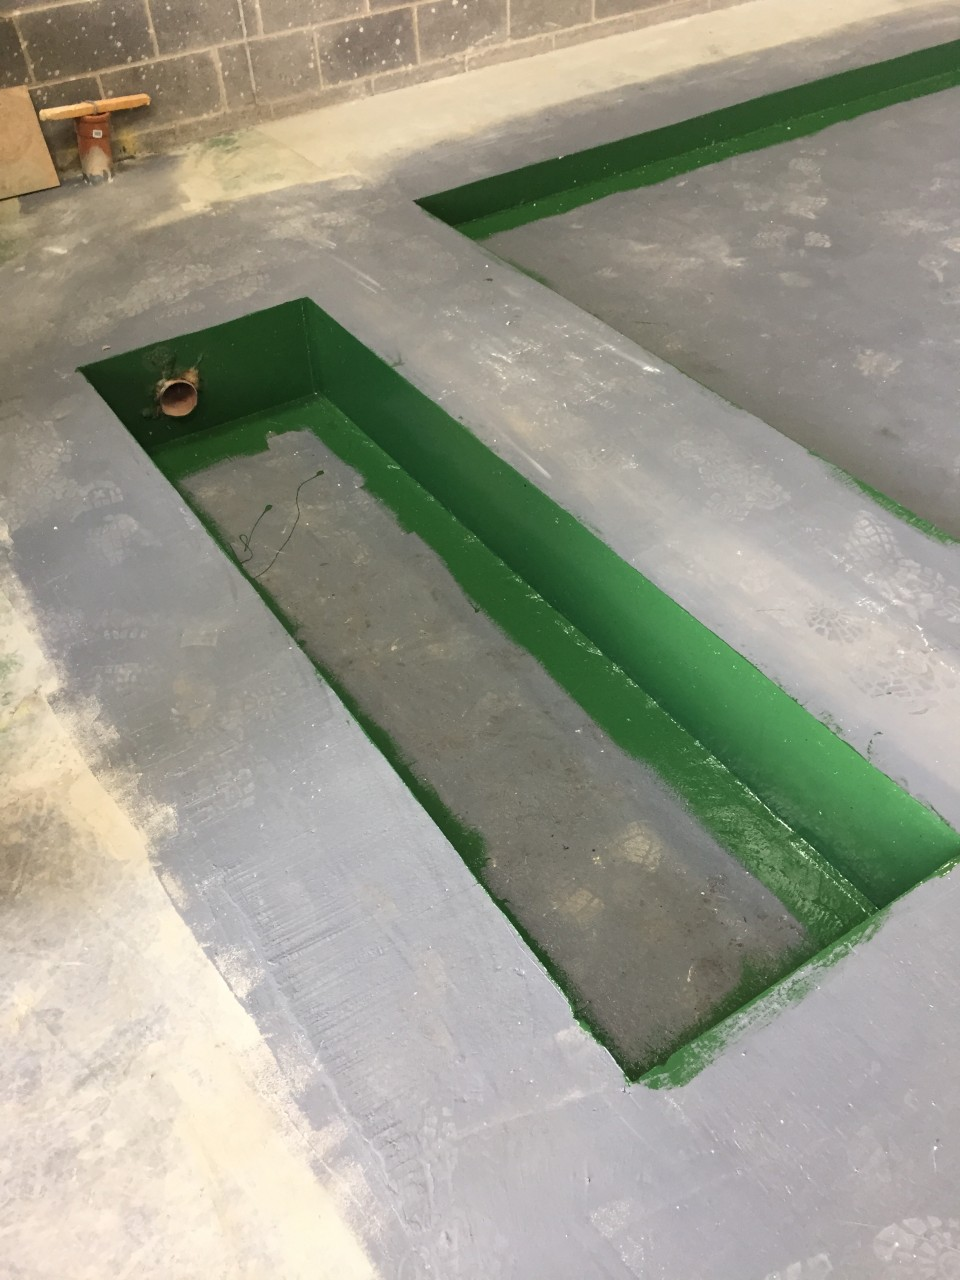 COMPLETED AND SET CONCRETE READY FOR THE INSTALLATION OF THE NEW BRAKE TESTING EQUIPMENT.